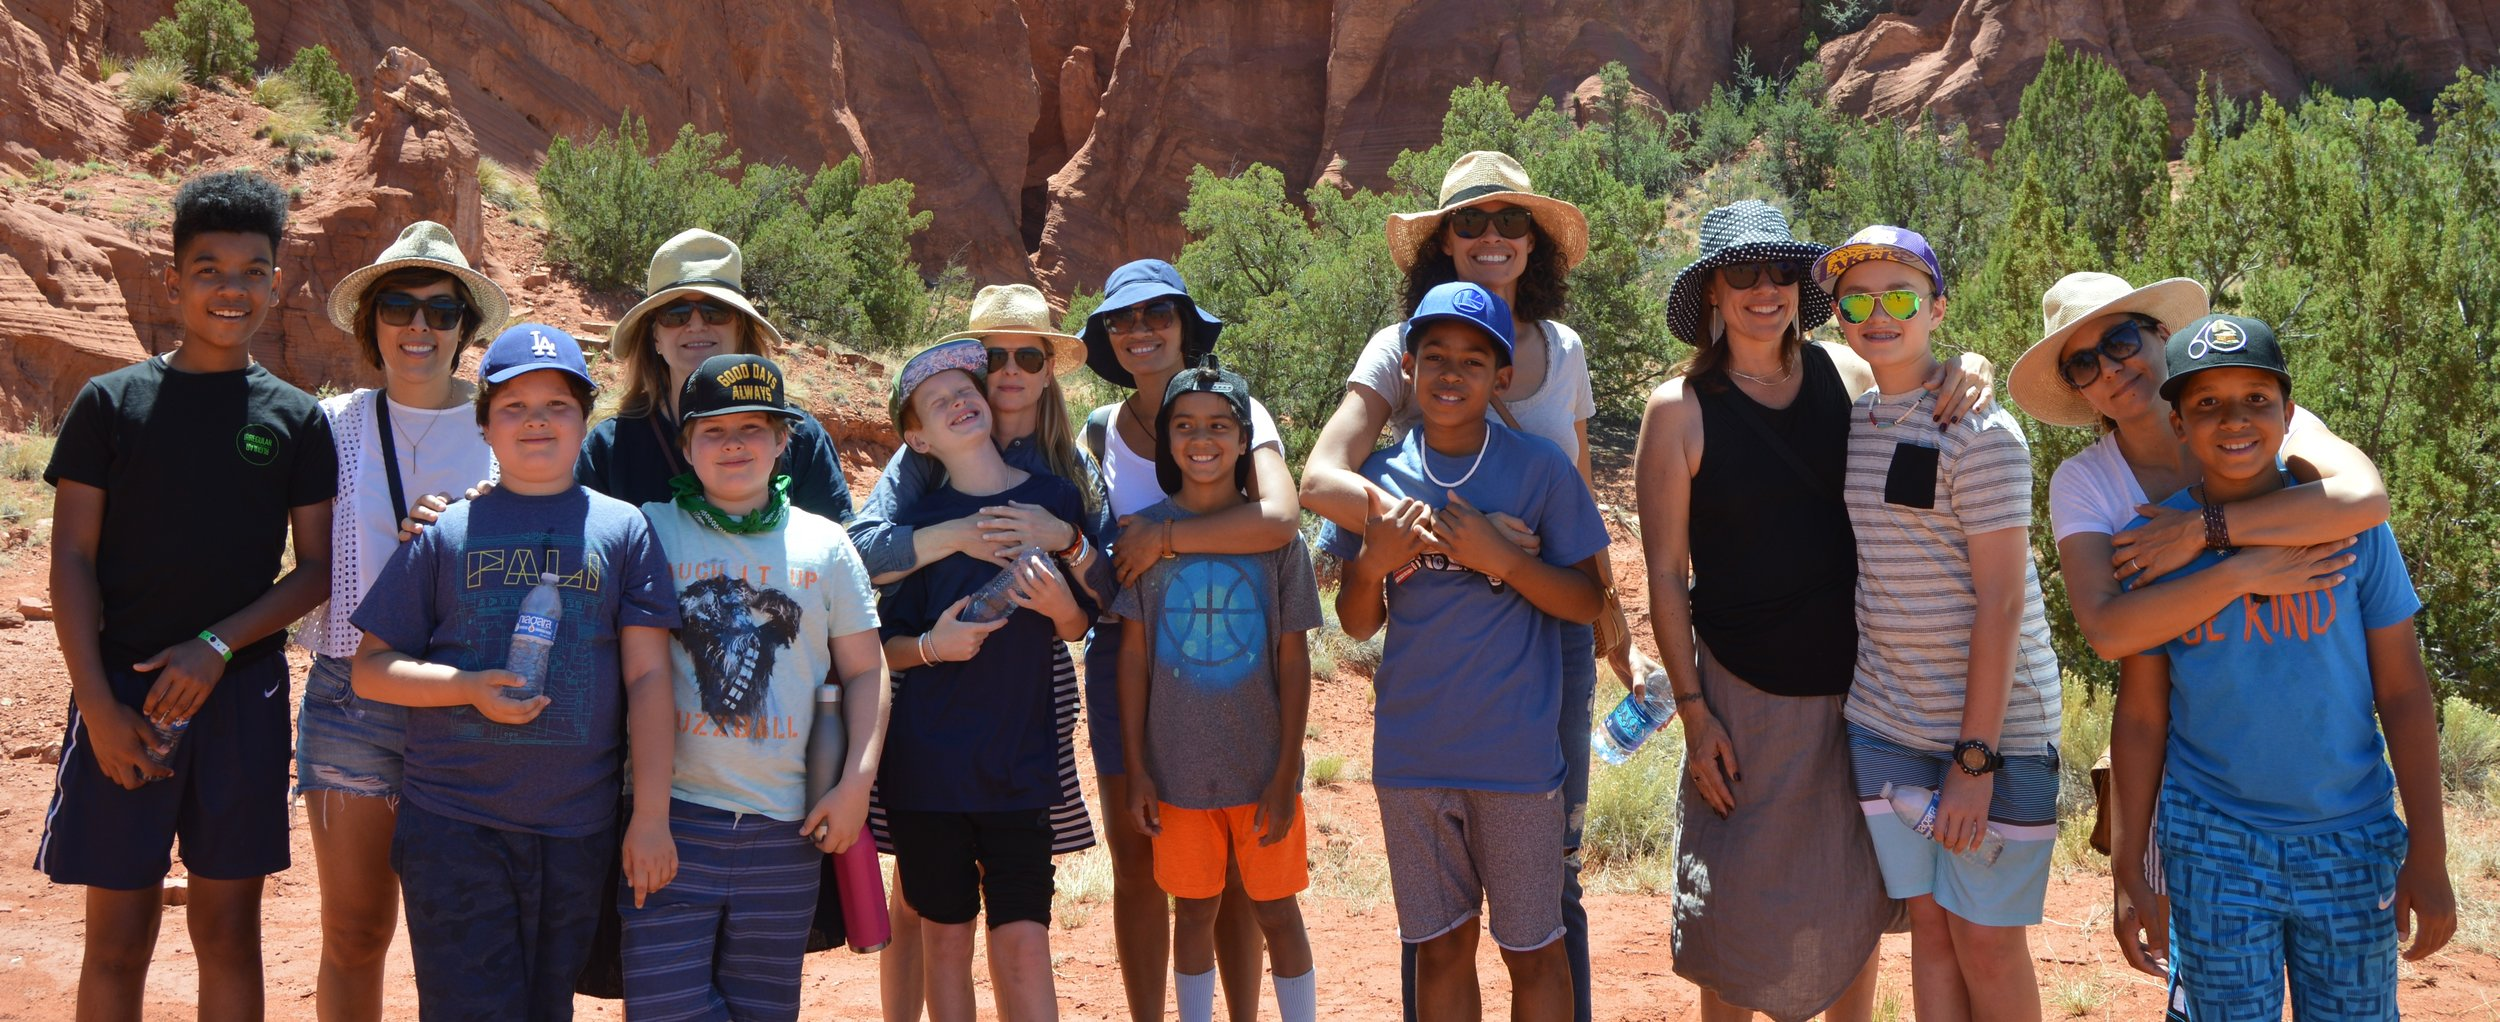 Mother + Son group picture at Jemez